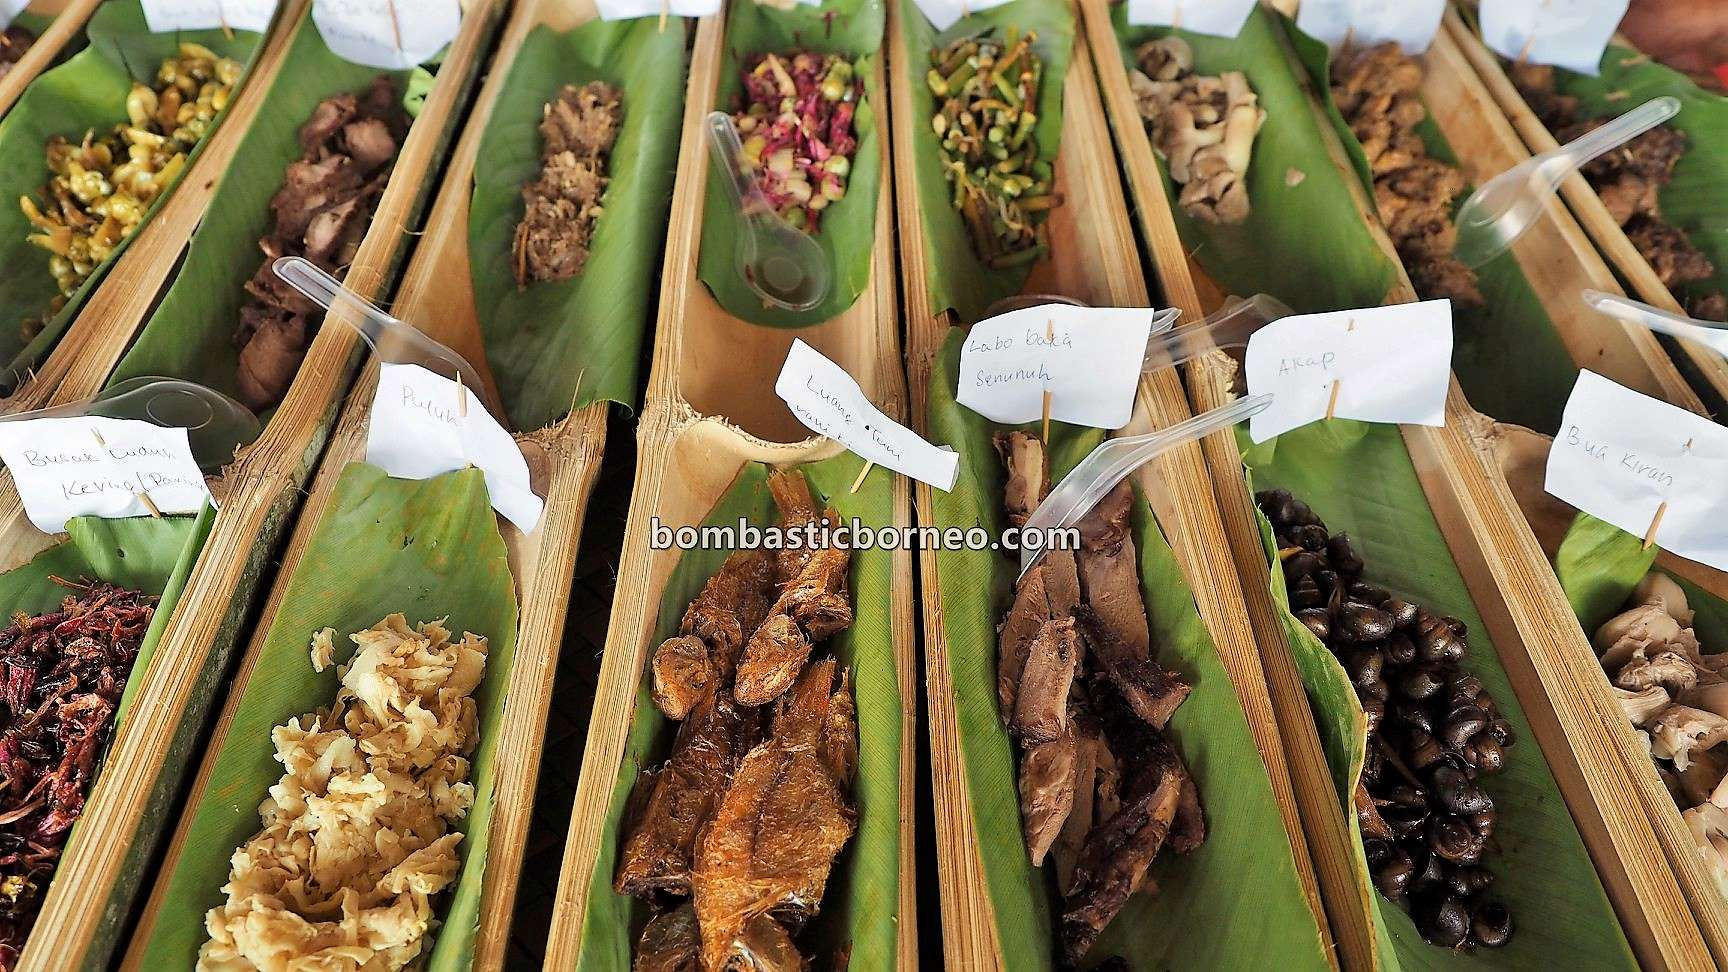 Pesta Nukenen, Bario Food Cultural Festival, exotic culinary, authentic, traditional, backpackers, native, Orang Ulu, tribal, Dayak Kelabit, Malaysia, Sarawak, Tourist attraction, travel guide, Borneo